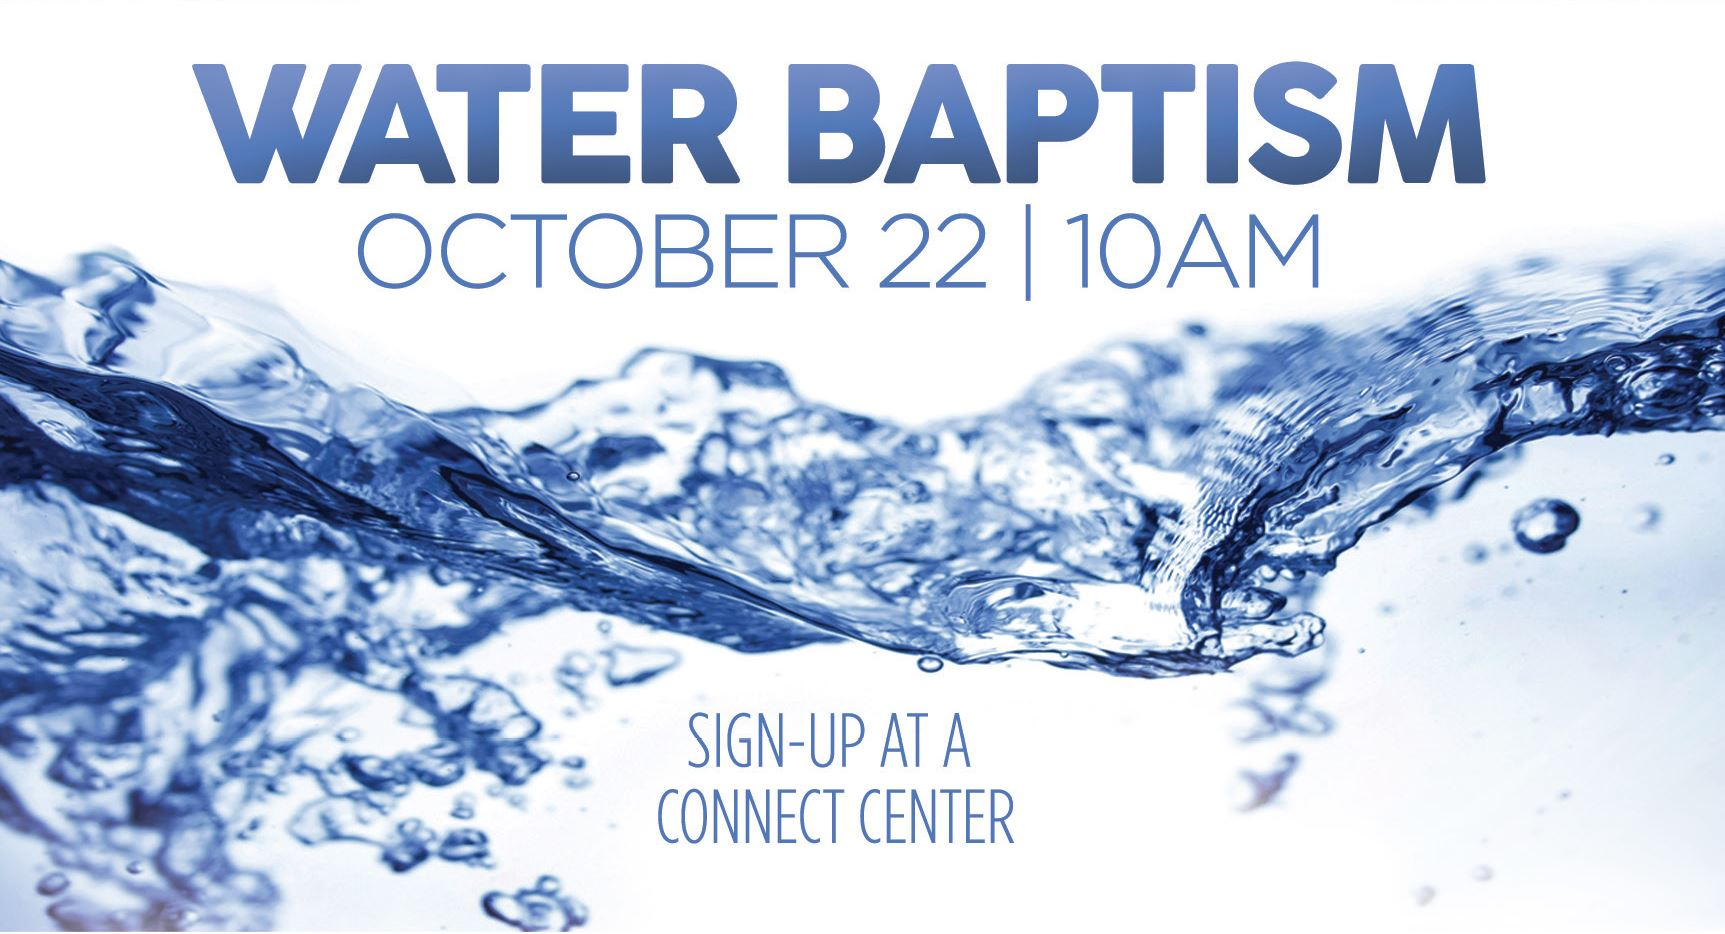 Water Baptism | October 22, 10am | Sign-up at a Connect Center